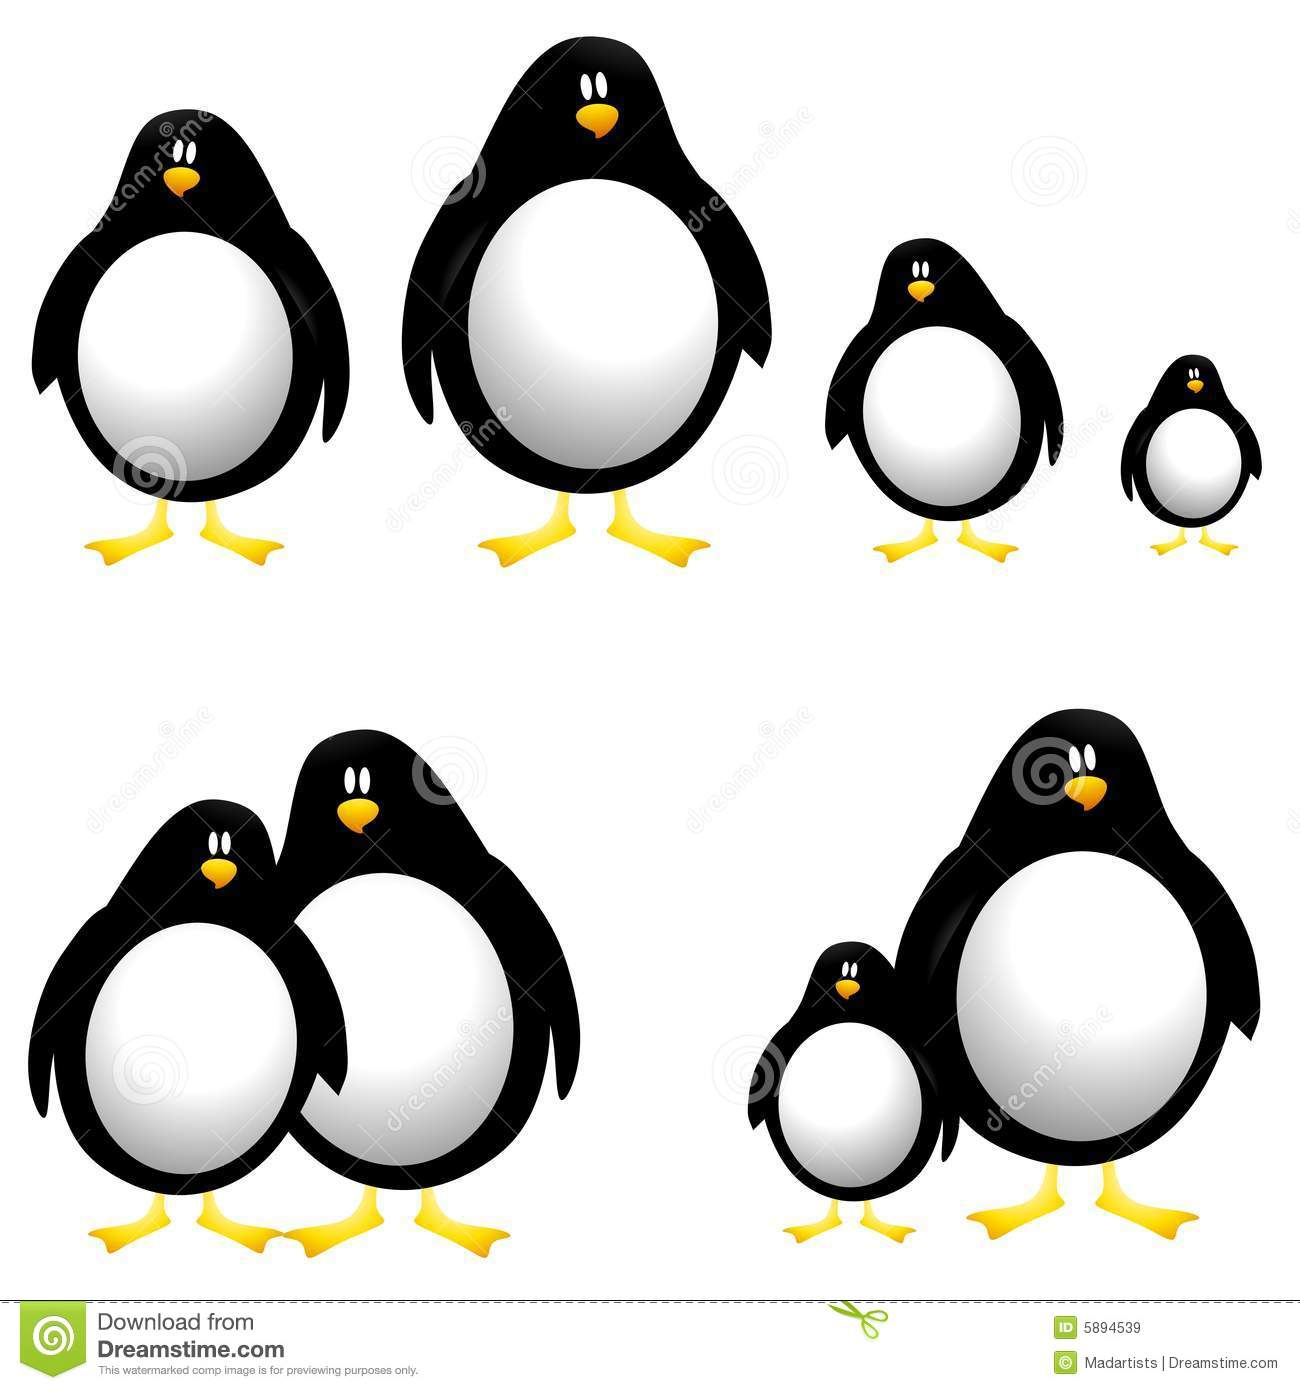 Cartoon penguins clip art stock illustration illustration of black cartoon penguins clip art voltagebd Choice Image